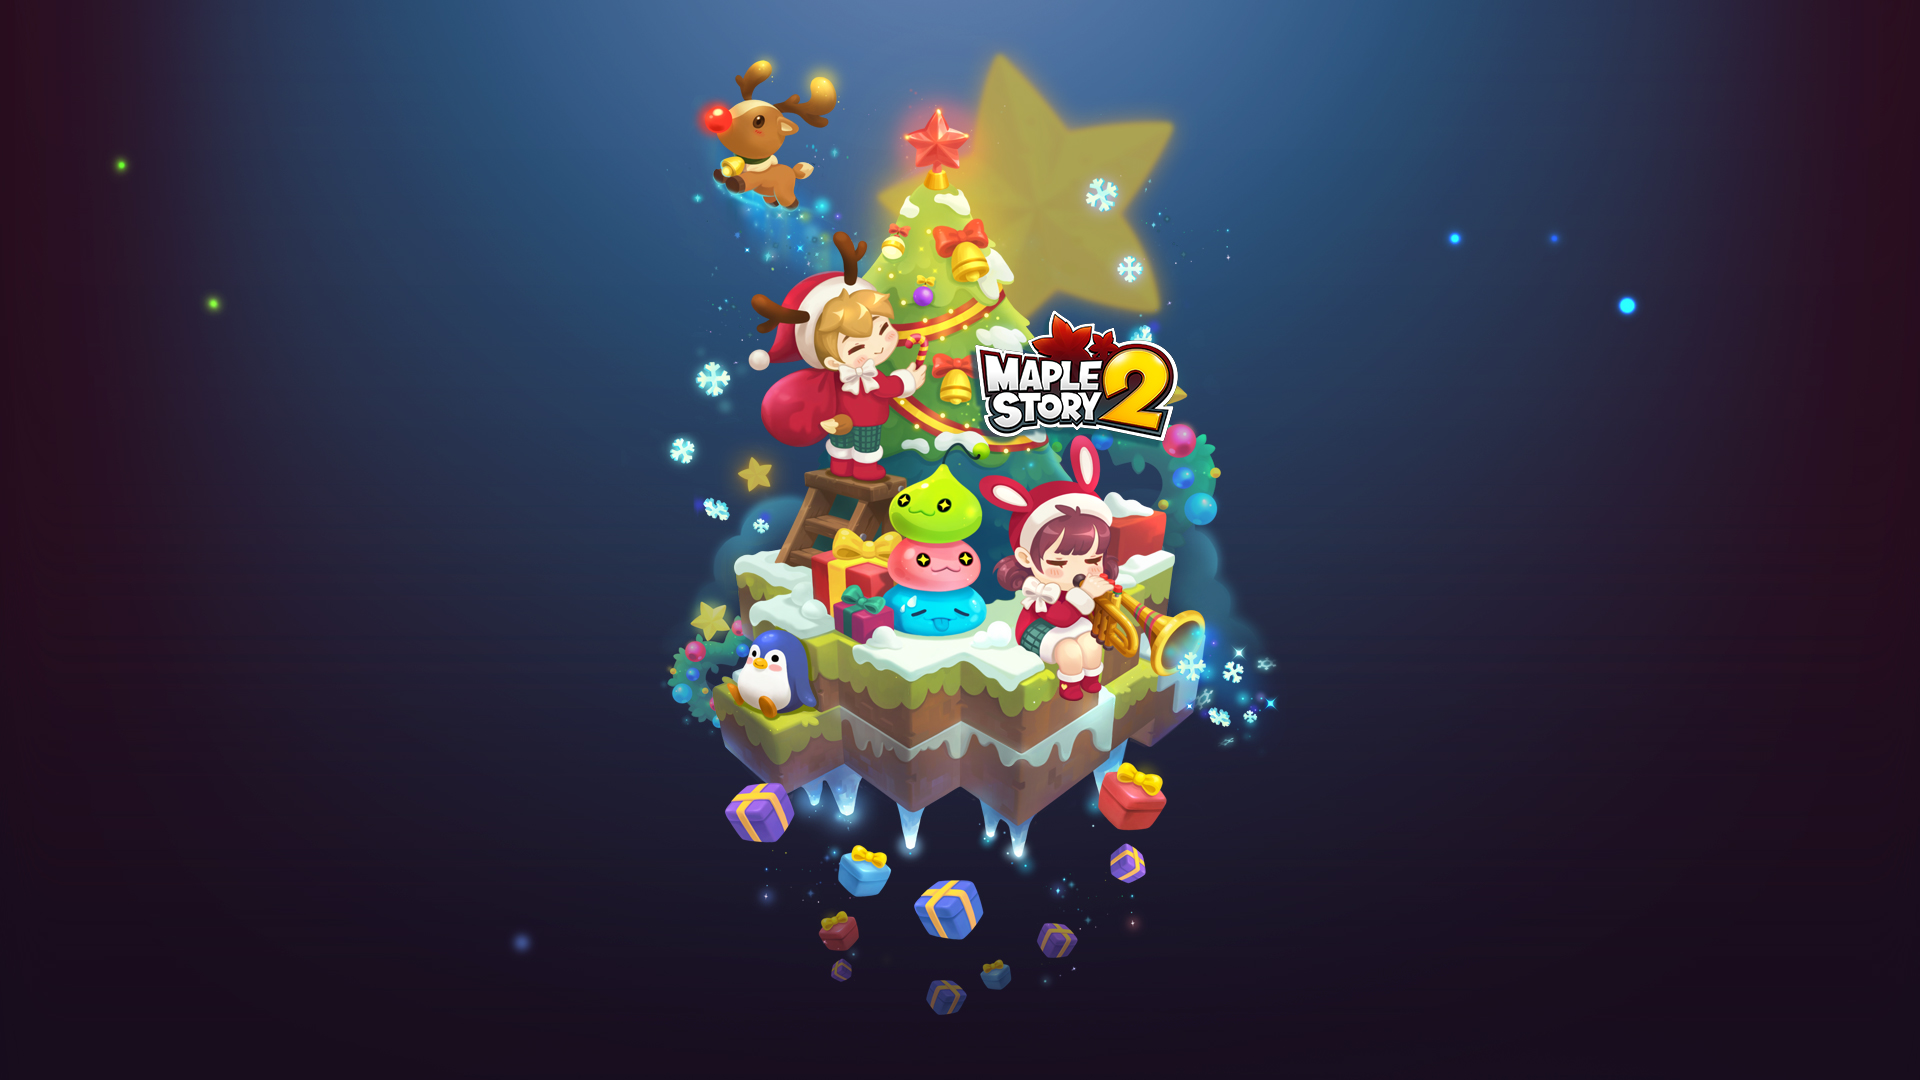 Holiday wallpapers official maplestory 2 website - 720 x 1080 wallpaper ...